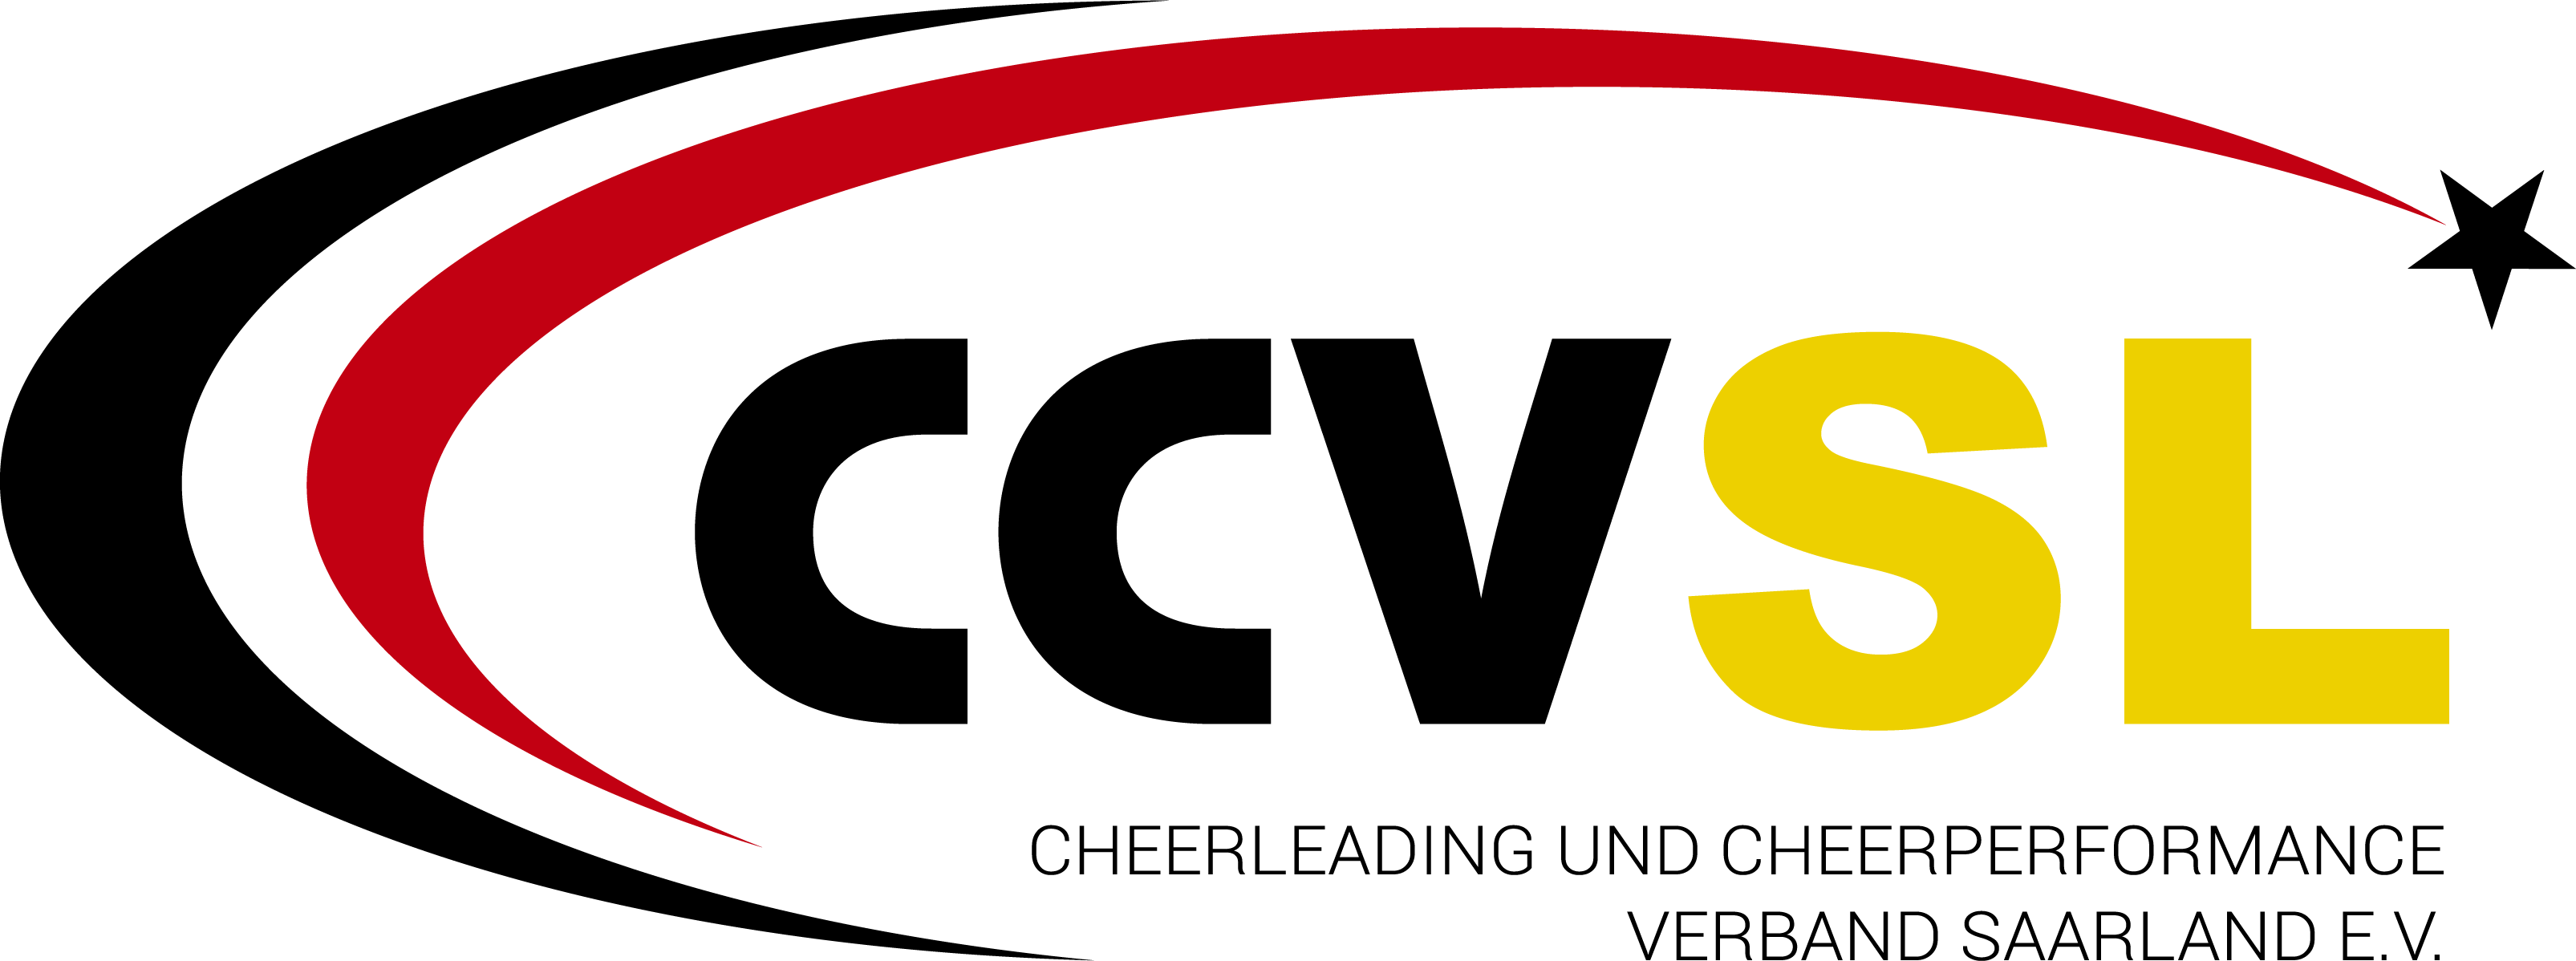 Cheerleading und Cheerdance Verband Saarland e. V.